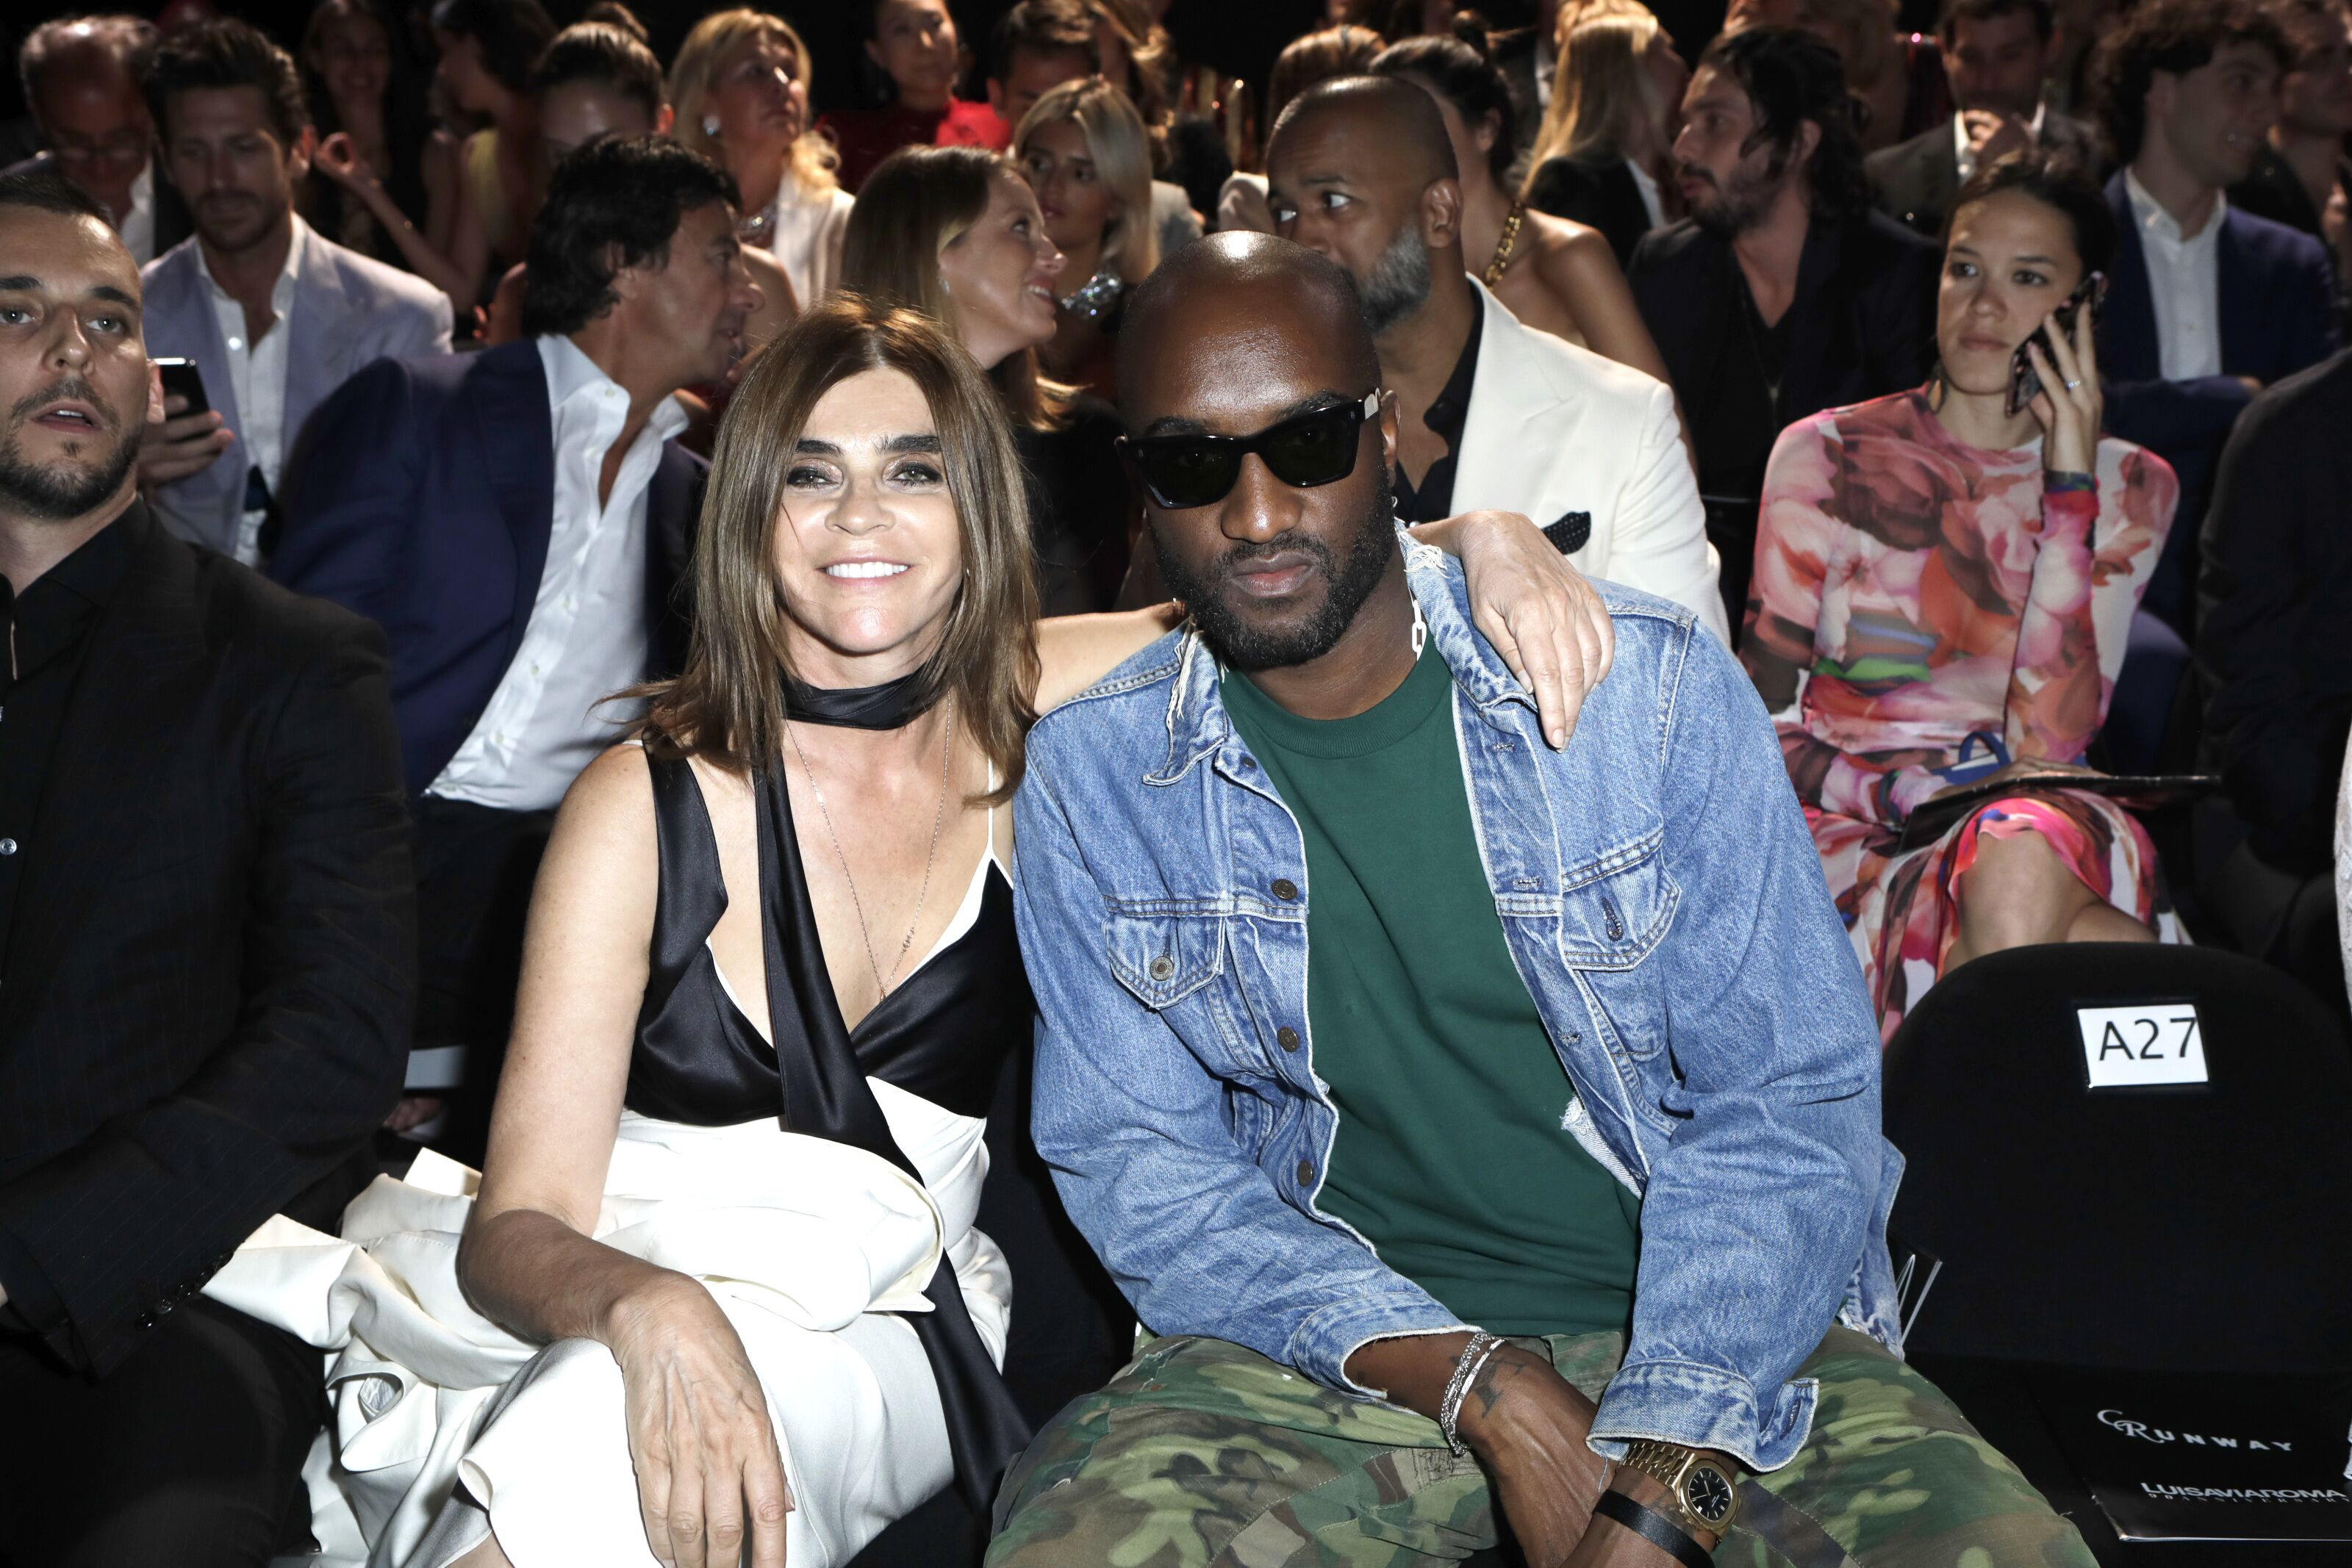 Virgil Abloh wants potential successors to step up